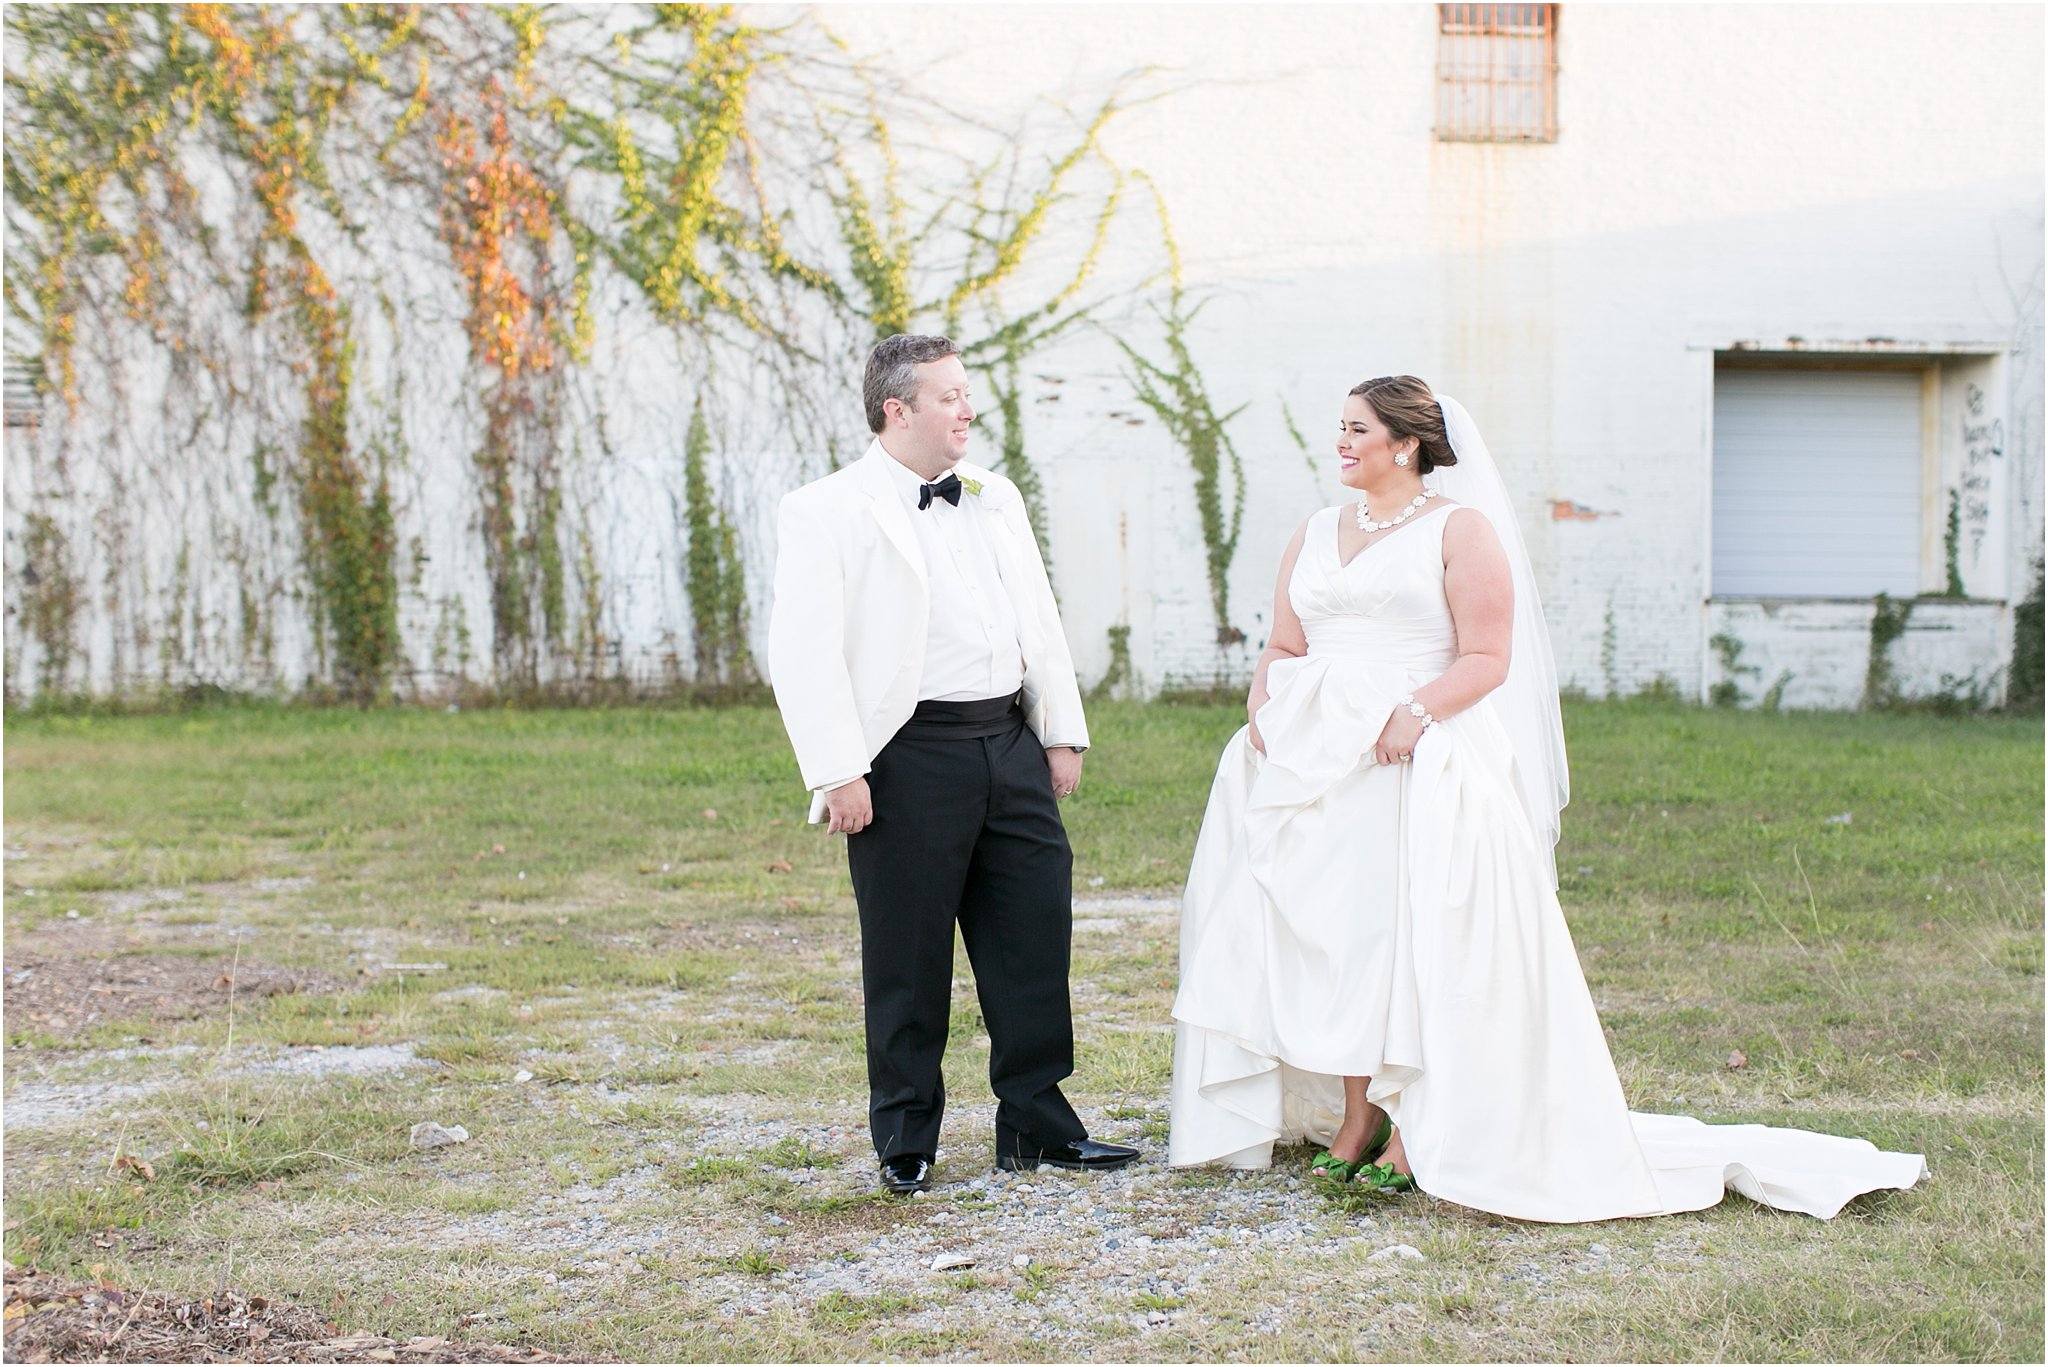 va_jessica_ryan_photography_virginia_wedding_norfolk_harrison_opera_house_norfolk_arts_district_portraits_3826